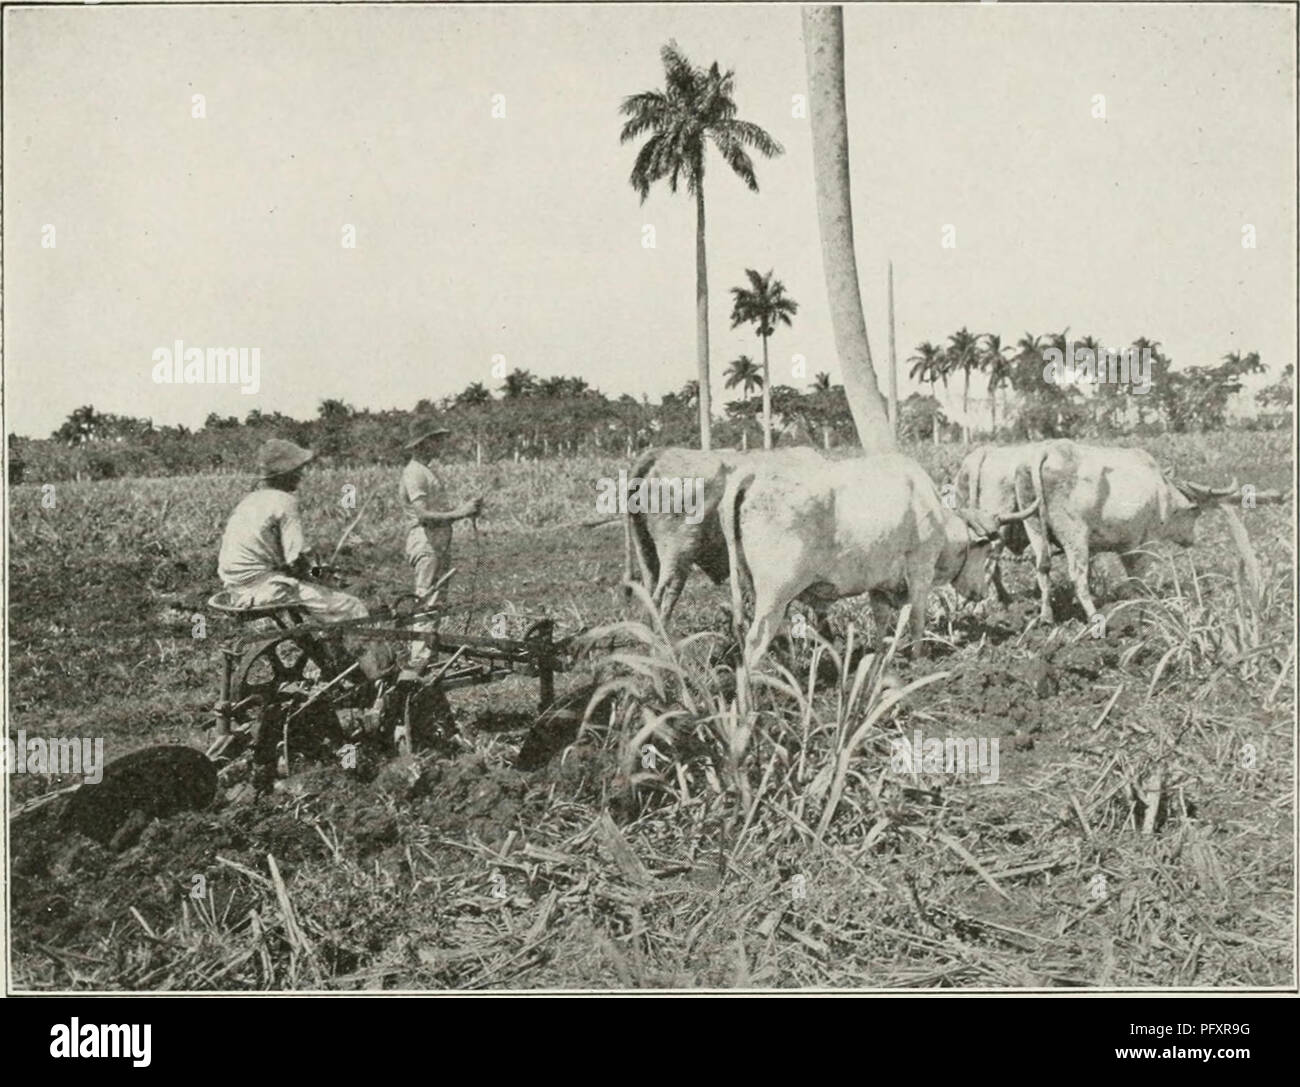 The Cuba Review Cuba Periodicals The Cuba Review 19 Ploughing In